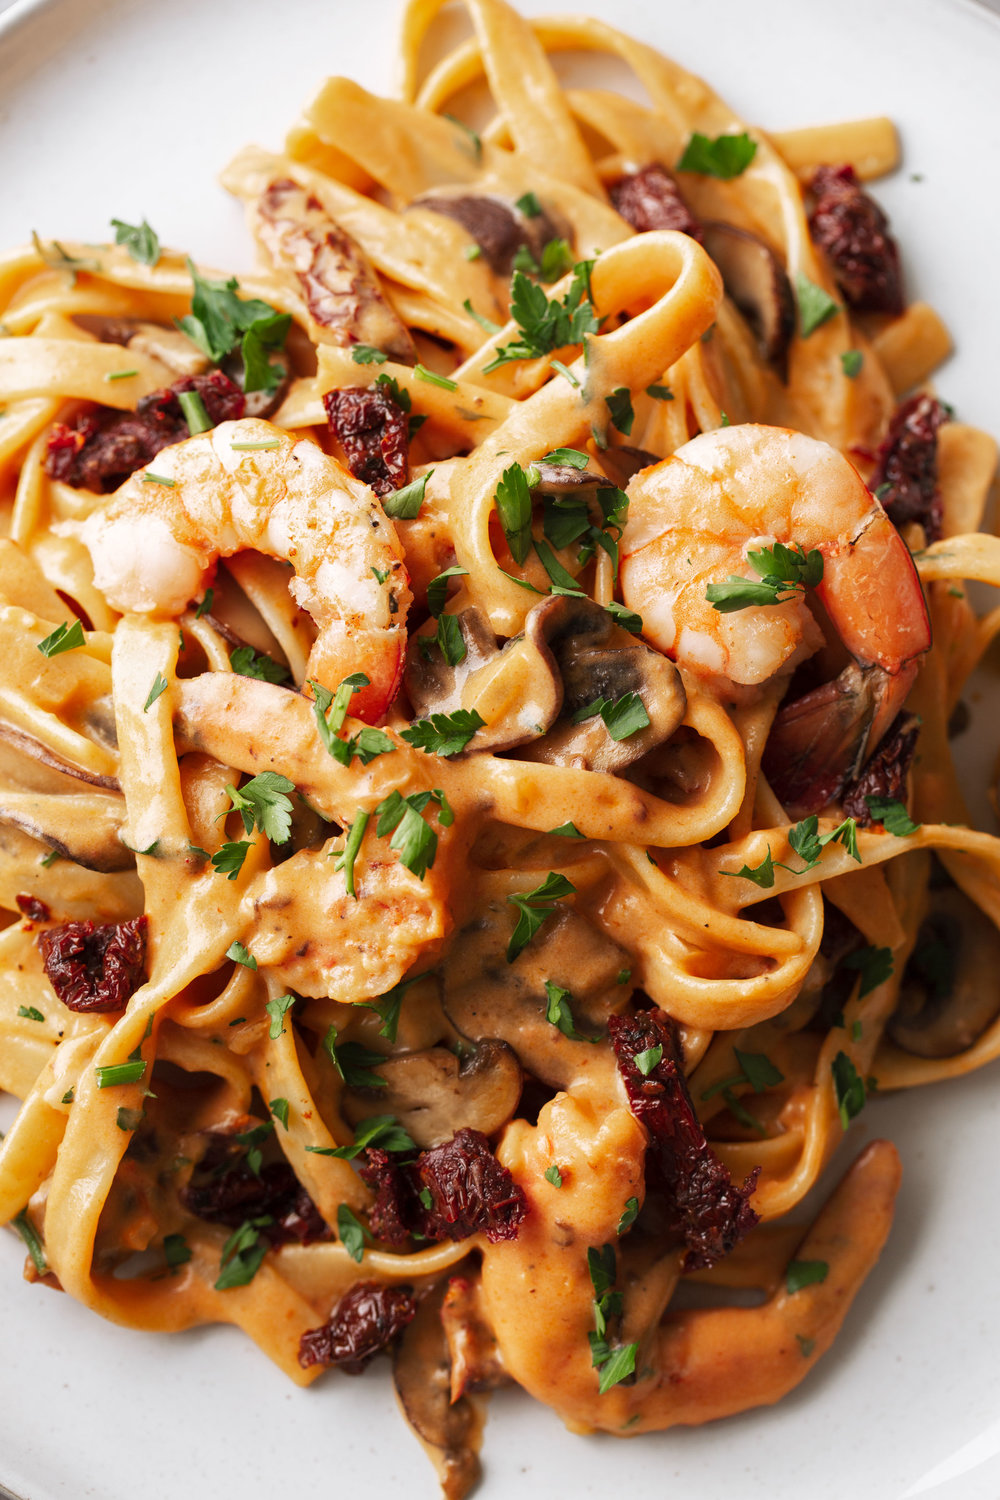 fettuccine with shrimp and sun-dried tomato cream sauce recipe from cooking with cocktail rings closeup